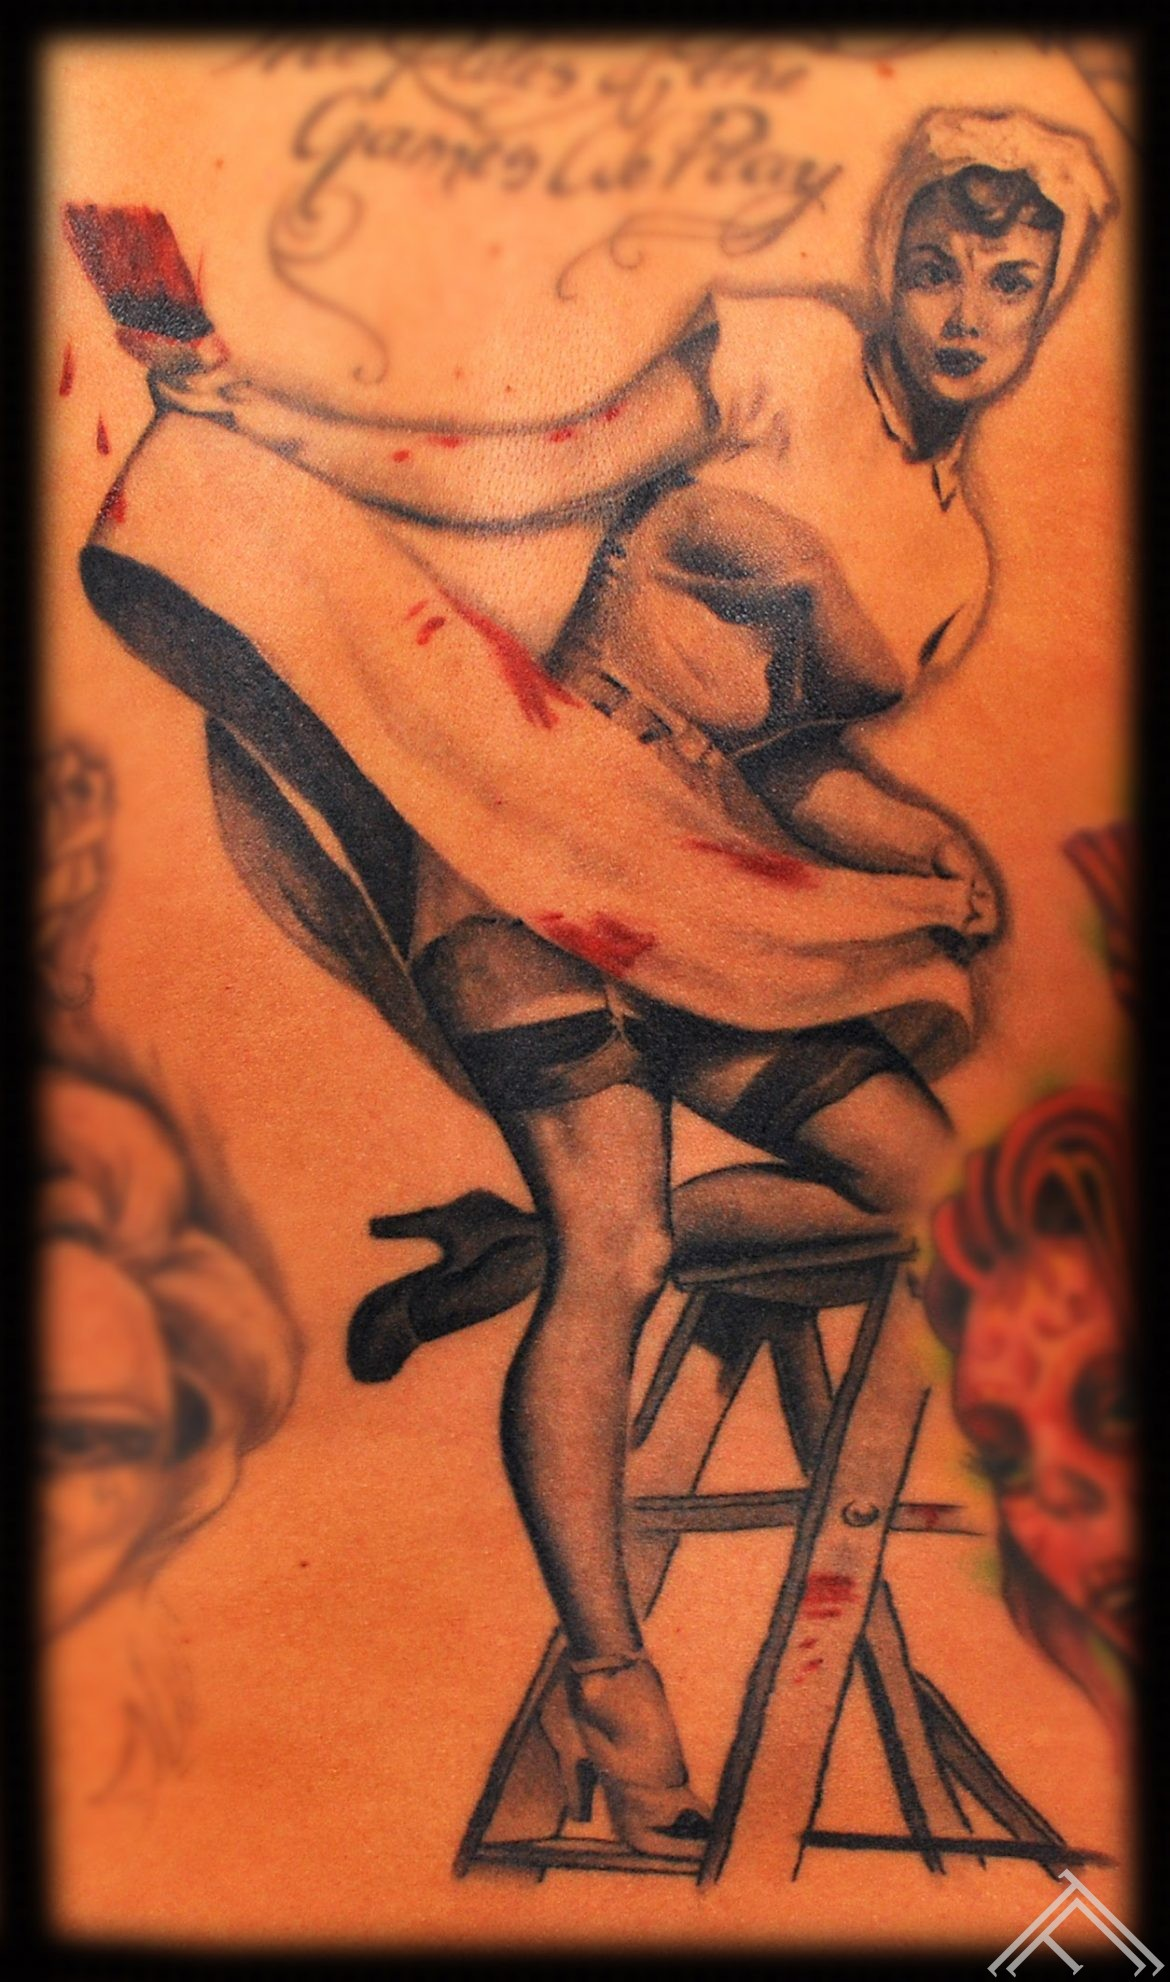 pin up_marispavlo_tattoo_tattoofrequency_frequency_rigatattoosaloon_rigastudio_tattoostudio